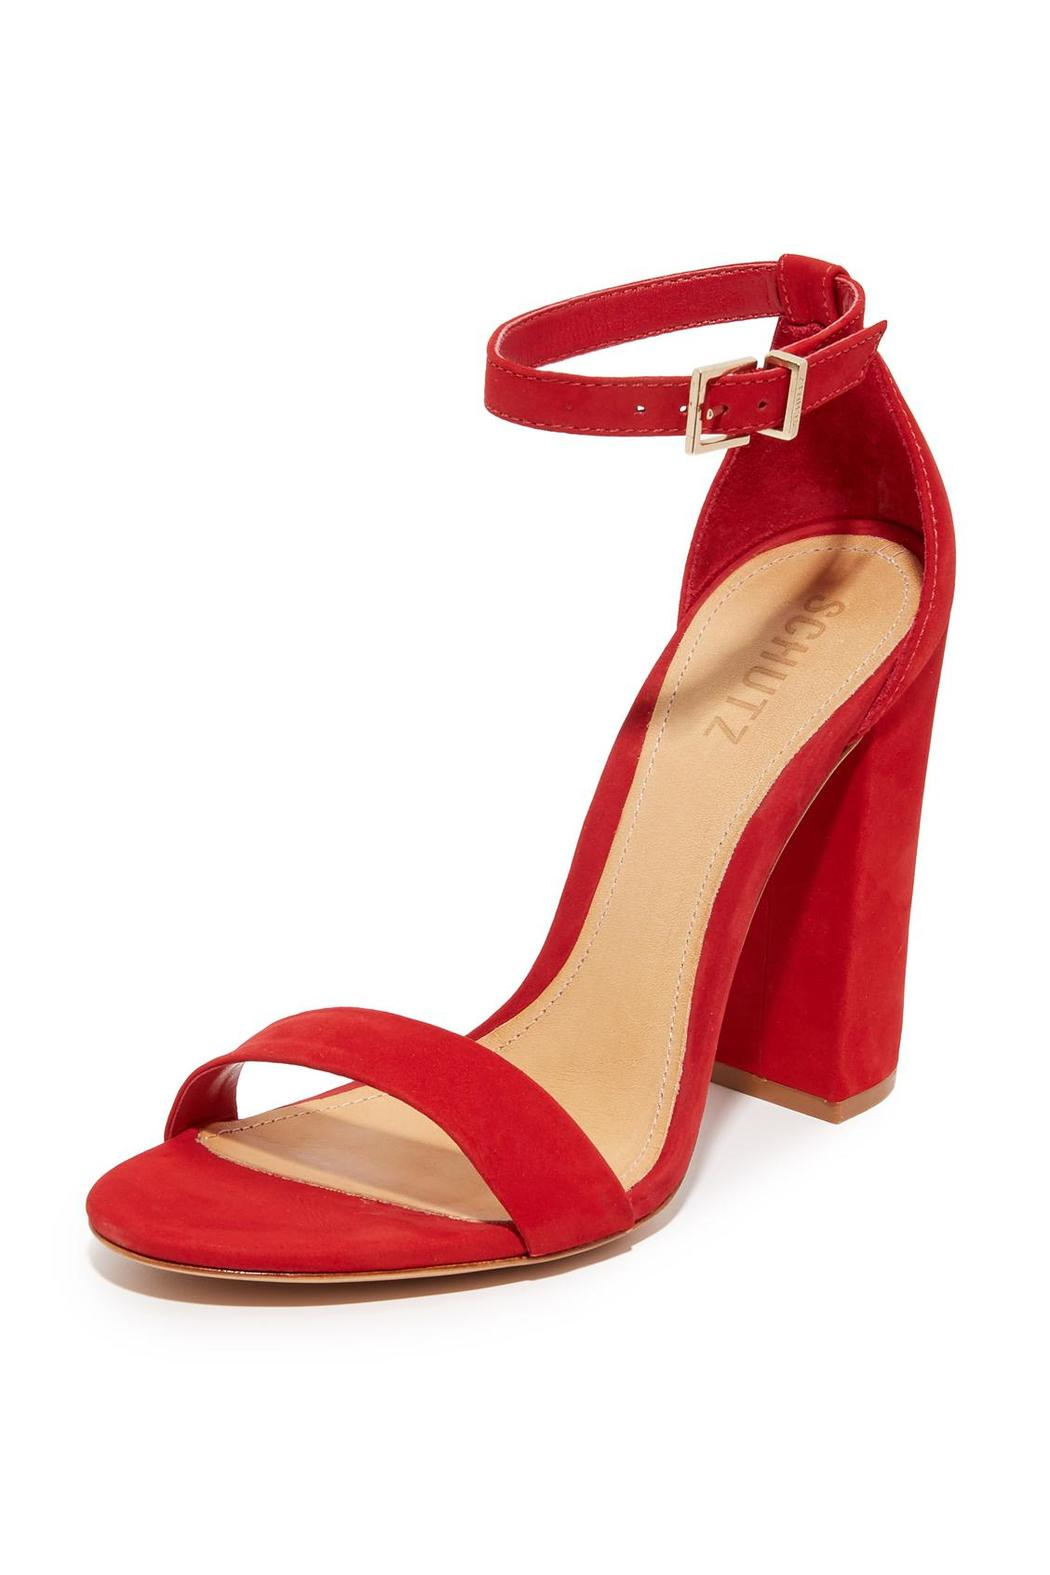 2fcfe7f8055 Schutz Red Block Heels from New Jersey by Shop Pray Love — Shoptiques